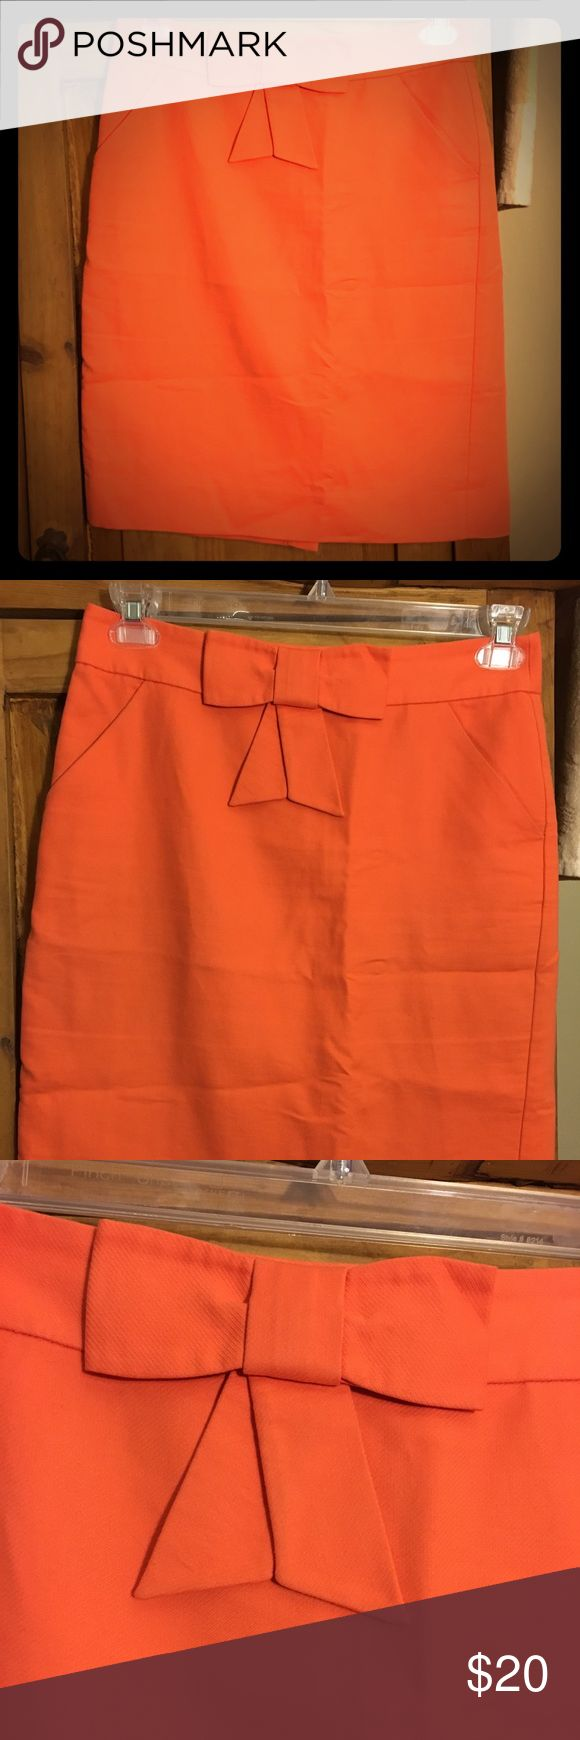 J. CREW salmon pink orange pencil skirt pinup 4 Super cute. Vintage inspired 1950s look. Bow on the front. Beautiful pink orange salmon color. Pencil skirt size 4 J. Crew Skirts Pencil